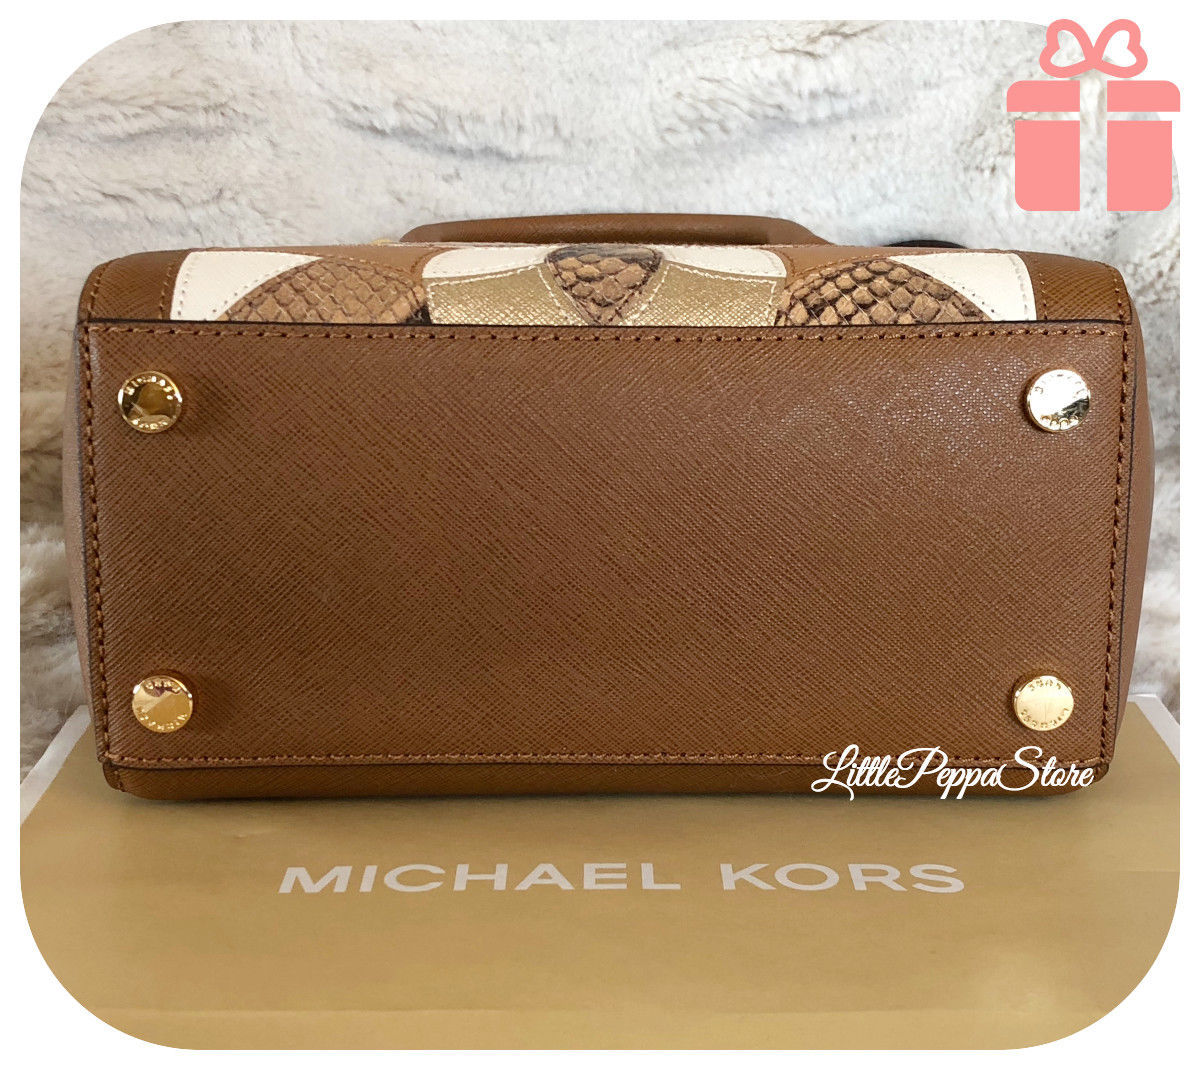 498b8845e9 ... NWT MICHAEL KORS PATCHES LEATHER SANDRINE STUD SMALL CROSSBODY BAG IN  LUGGAGE ...